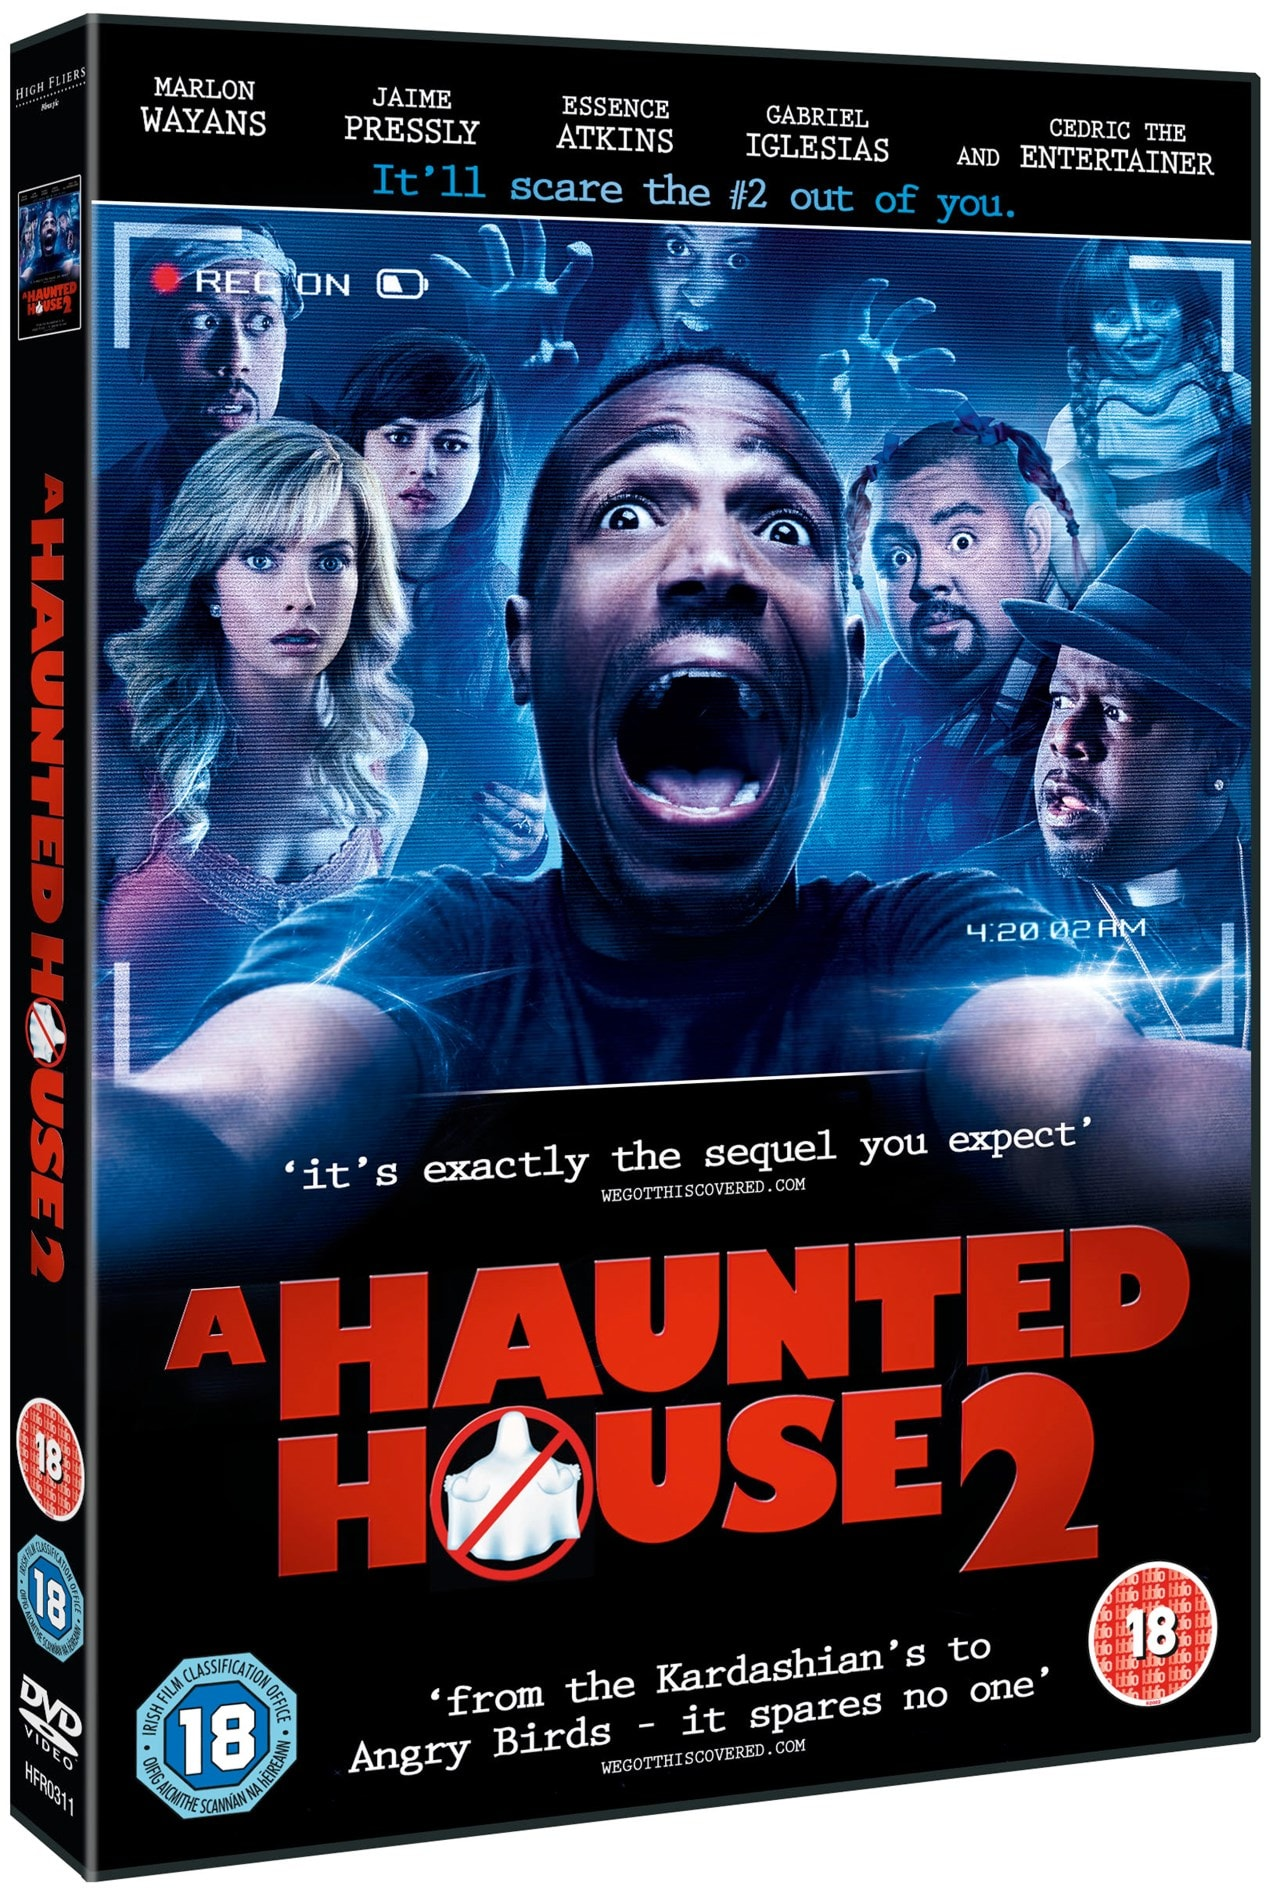 A Haunted House 2 - 2